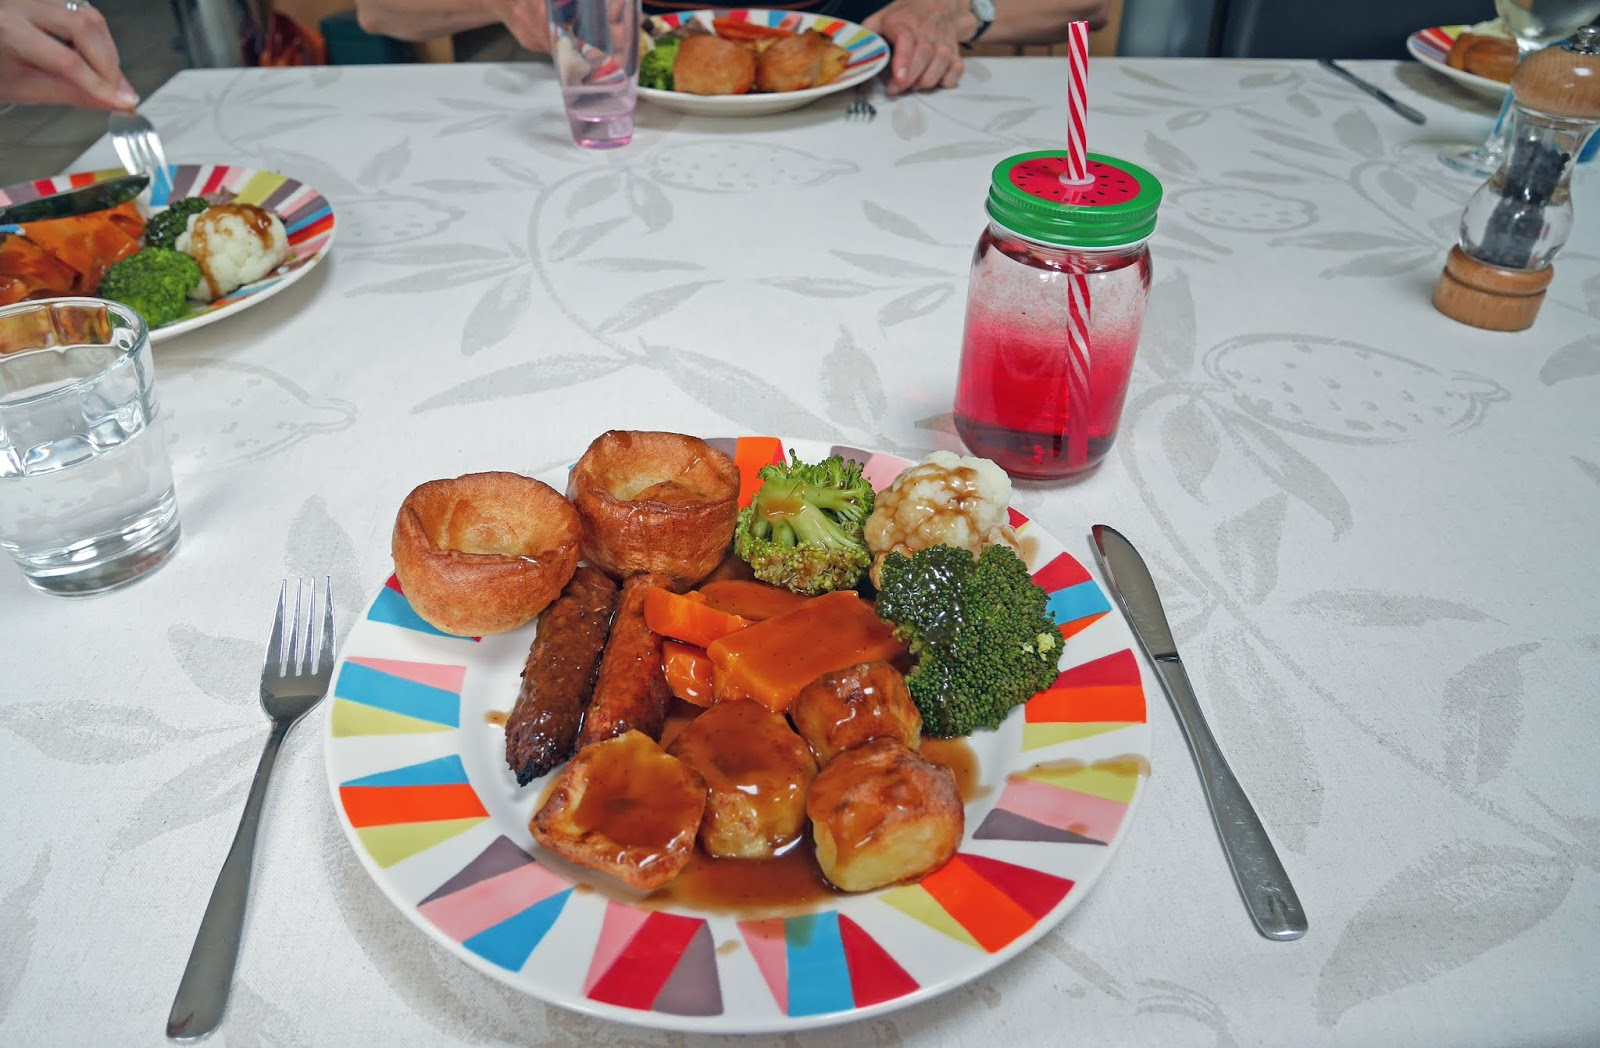 A traditional roast dinner that my Mum cooked for us